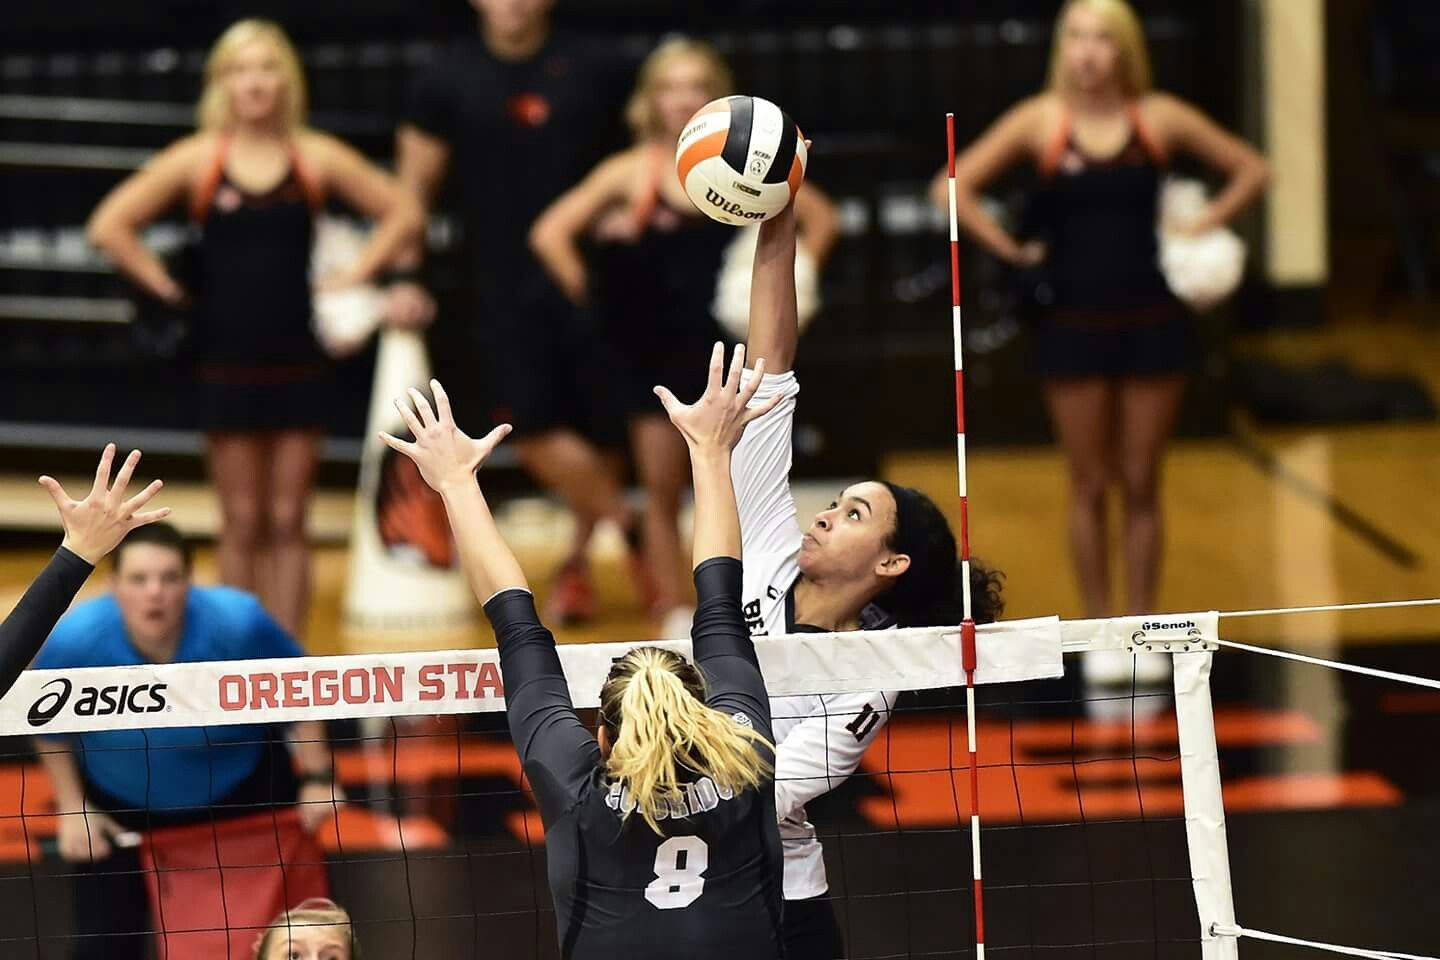 Pin By Dorothy Reagan On Lanesha Reagan Volleyball Writing Majors English Writing Oregon State University